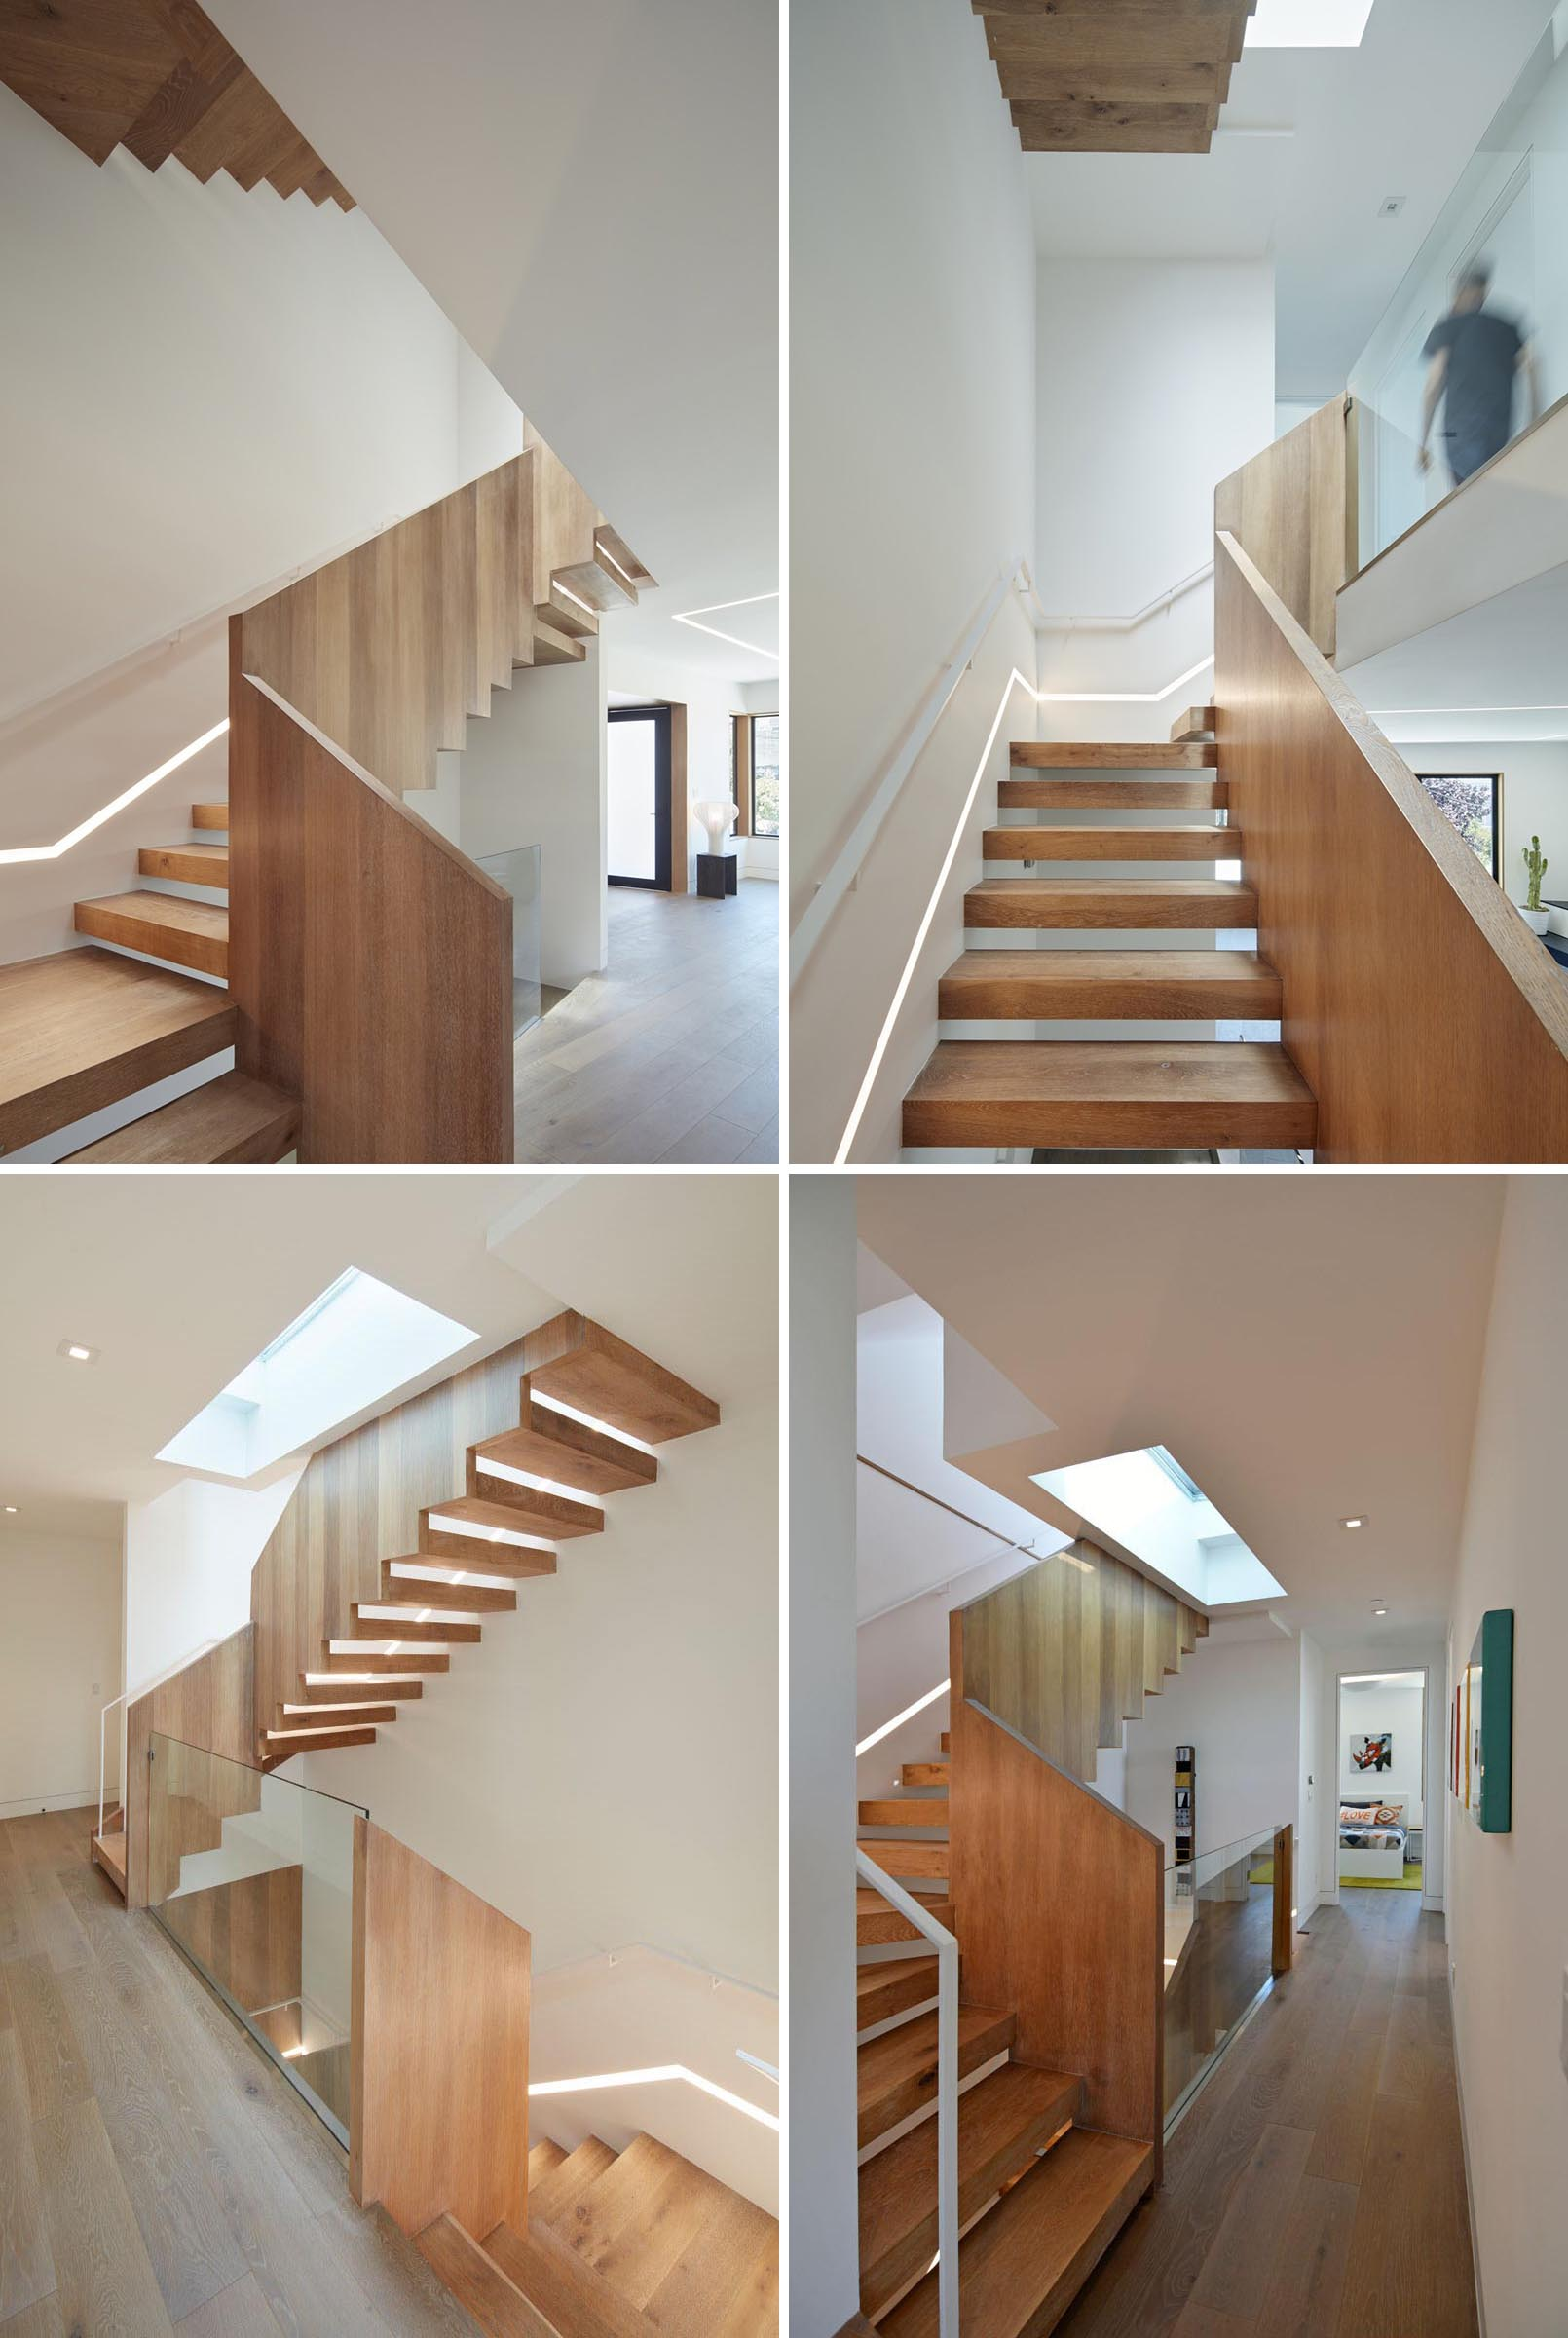 Modern wood stairs with lighting built into the wall.